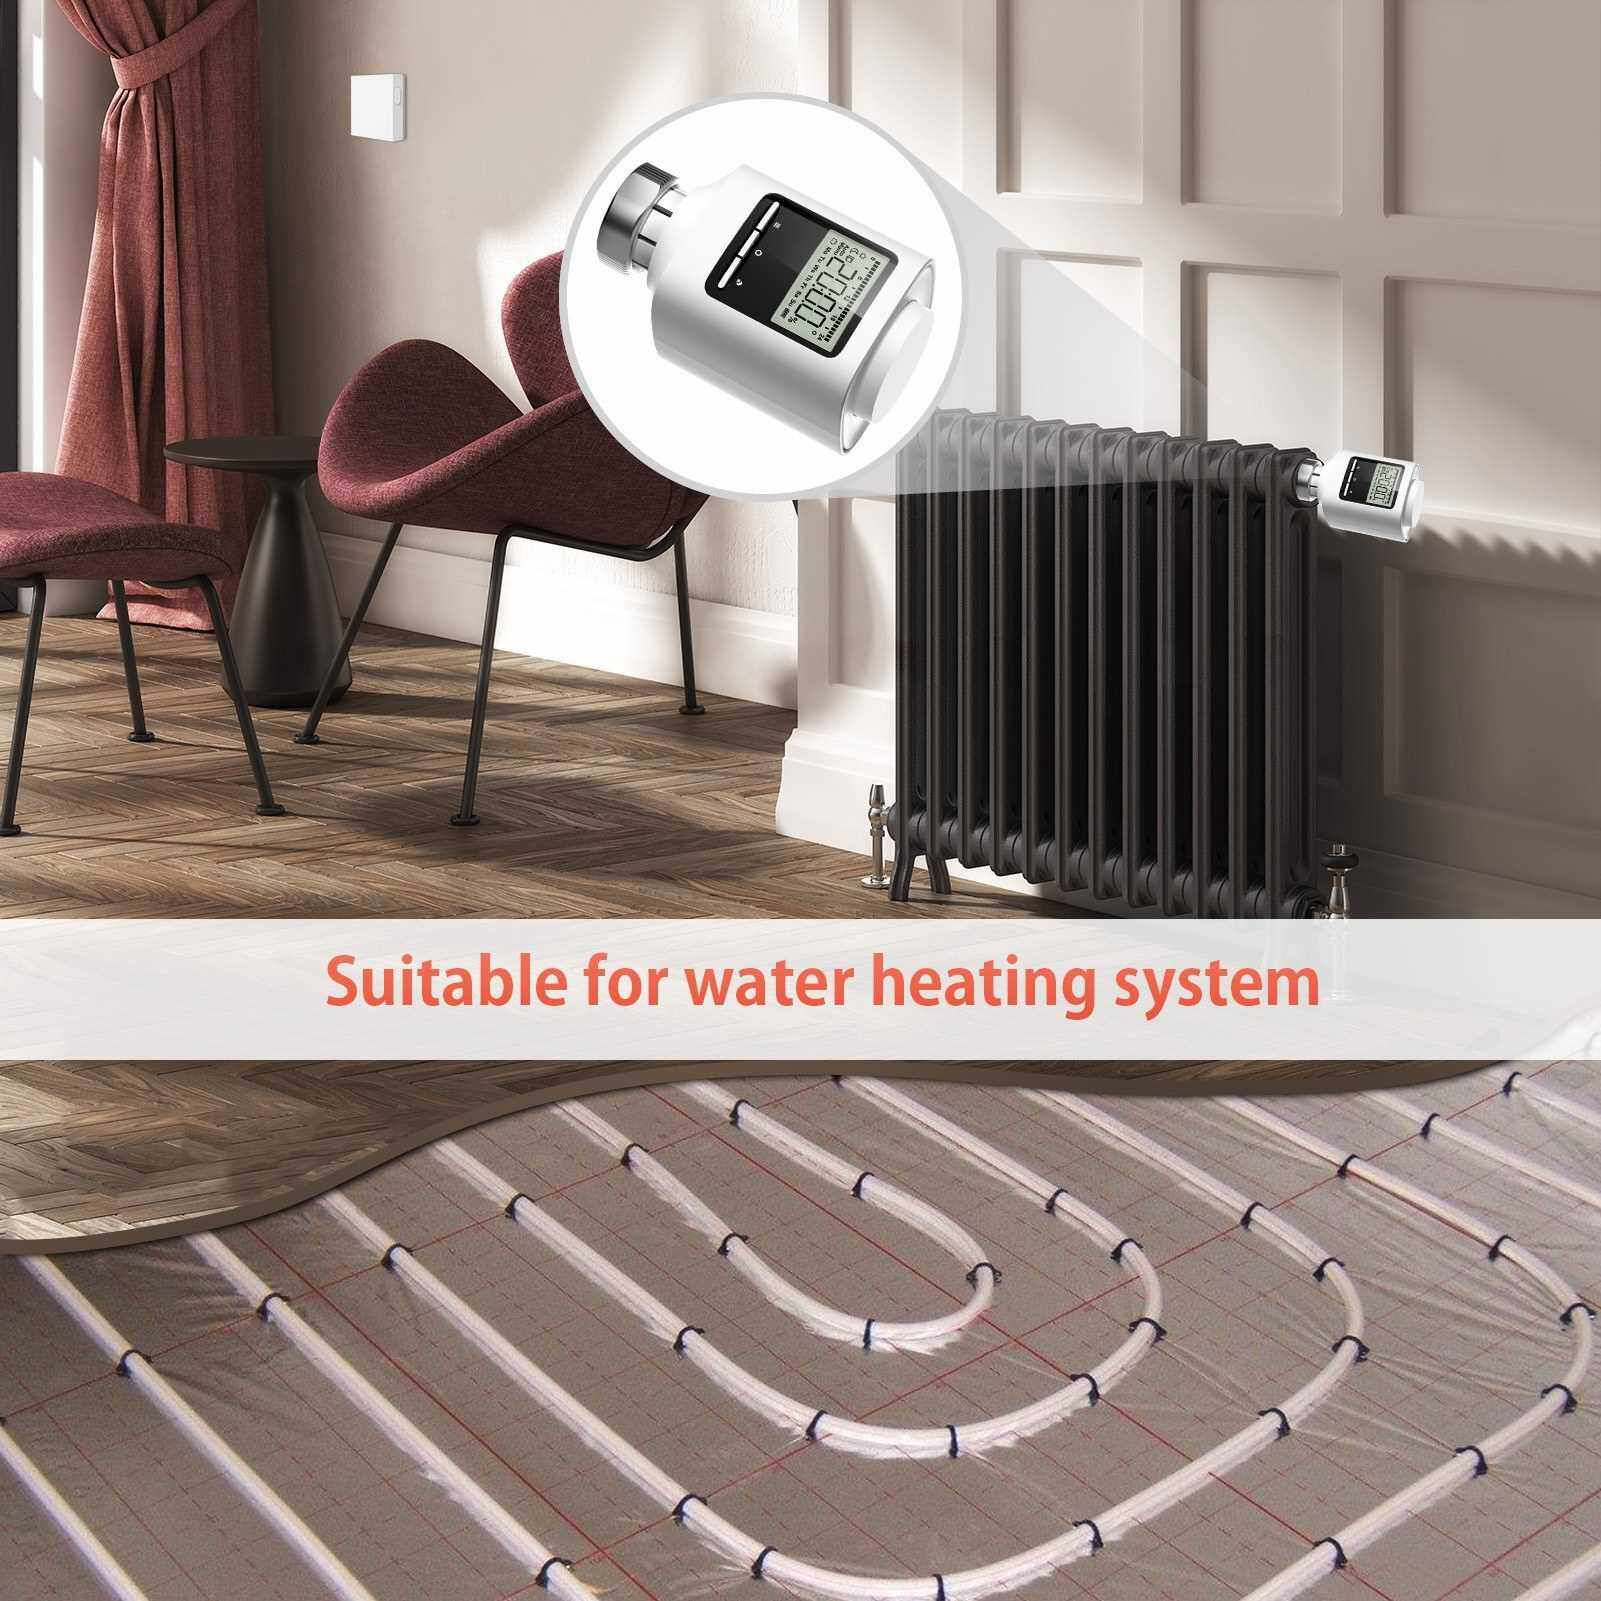 People's Choice ZigBee Thermostatic Radiator Valve Weekly Programmable Smart Heating Radiator Thermostat APP Control Voice Control Window-Opening Anti Freezing Function Indoor Constant Temperature Controller (Standard)